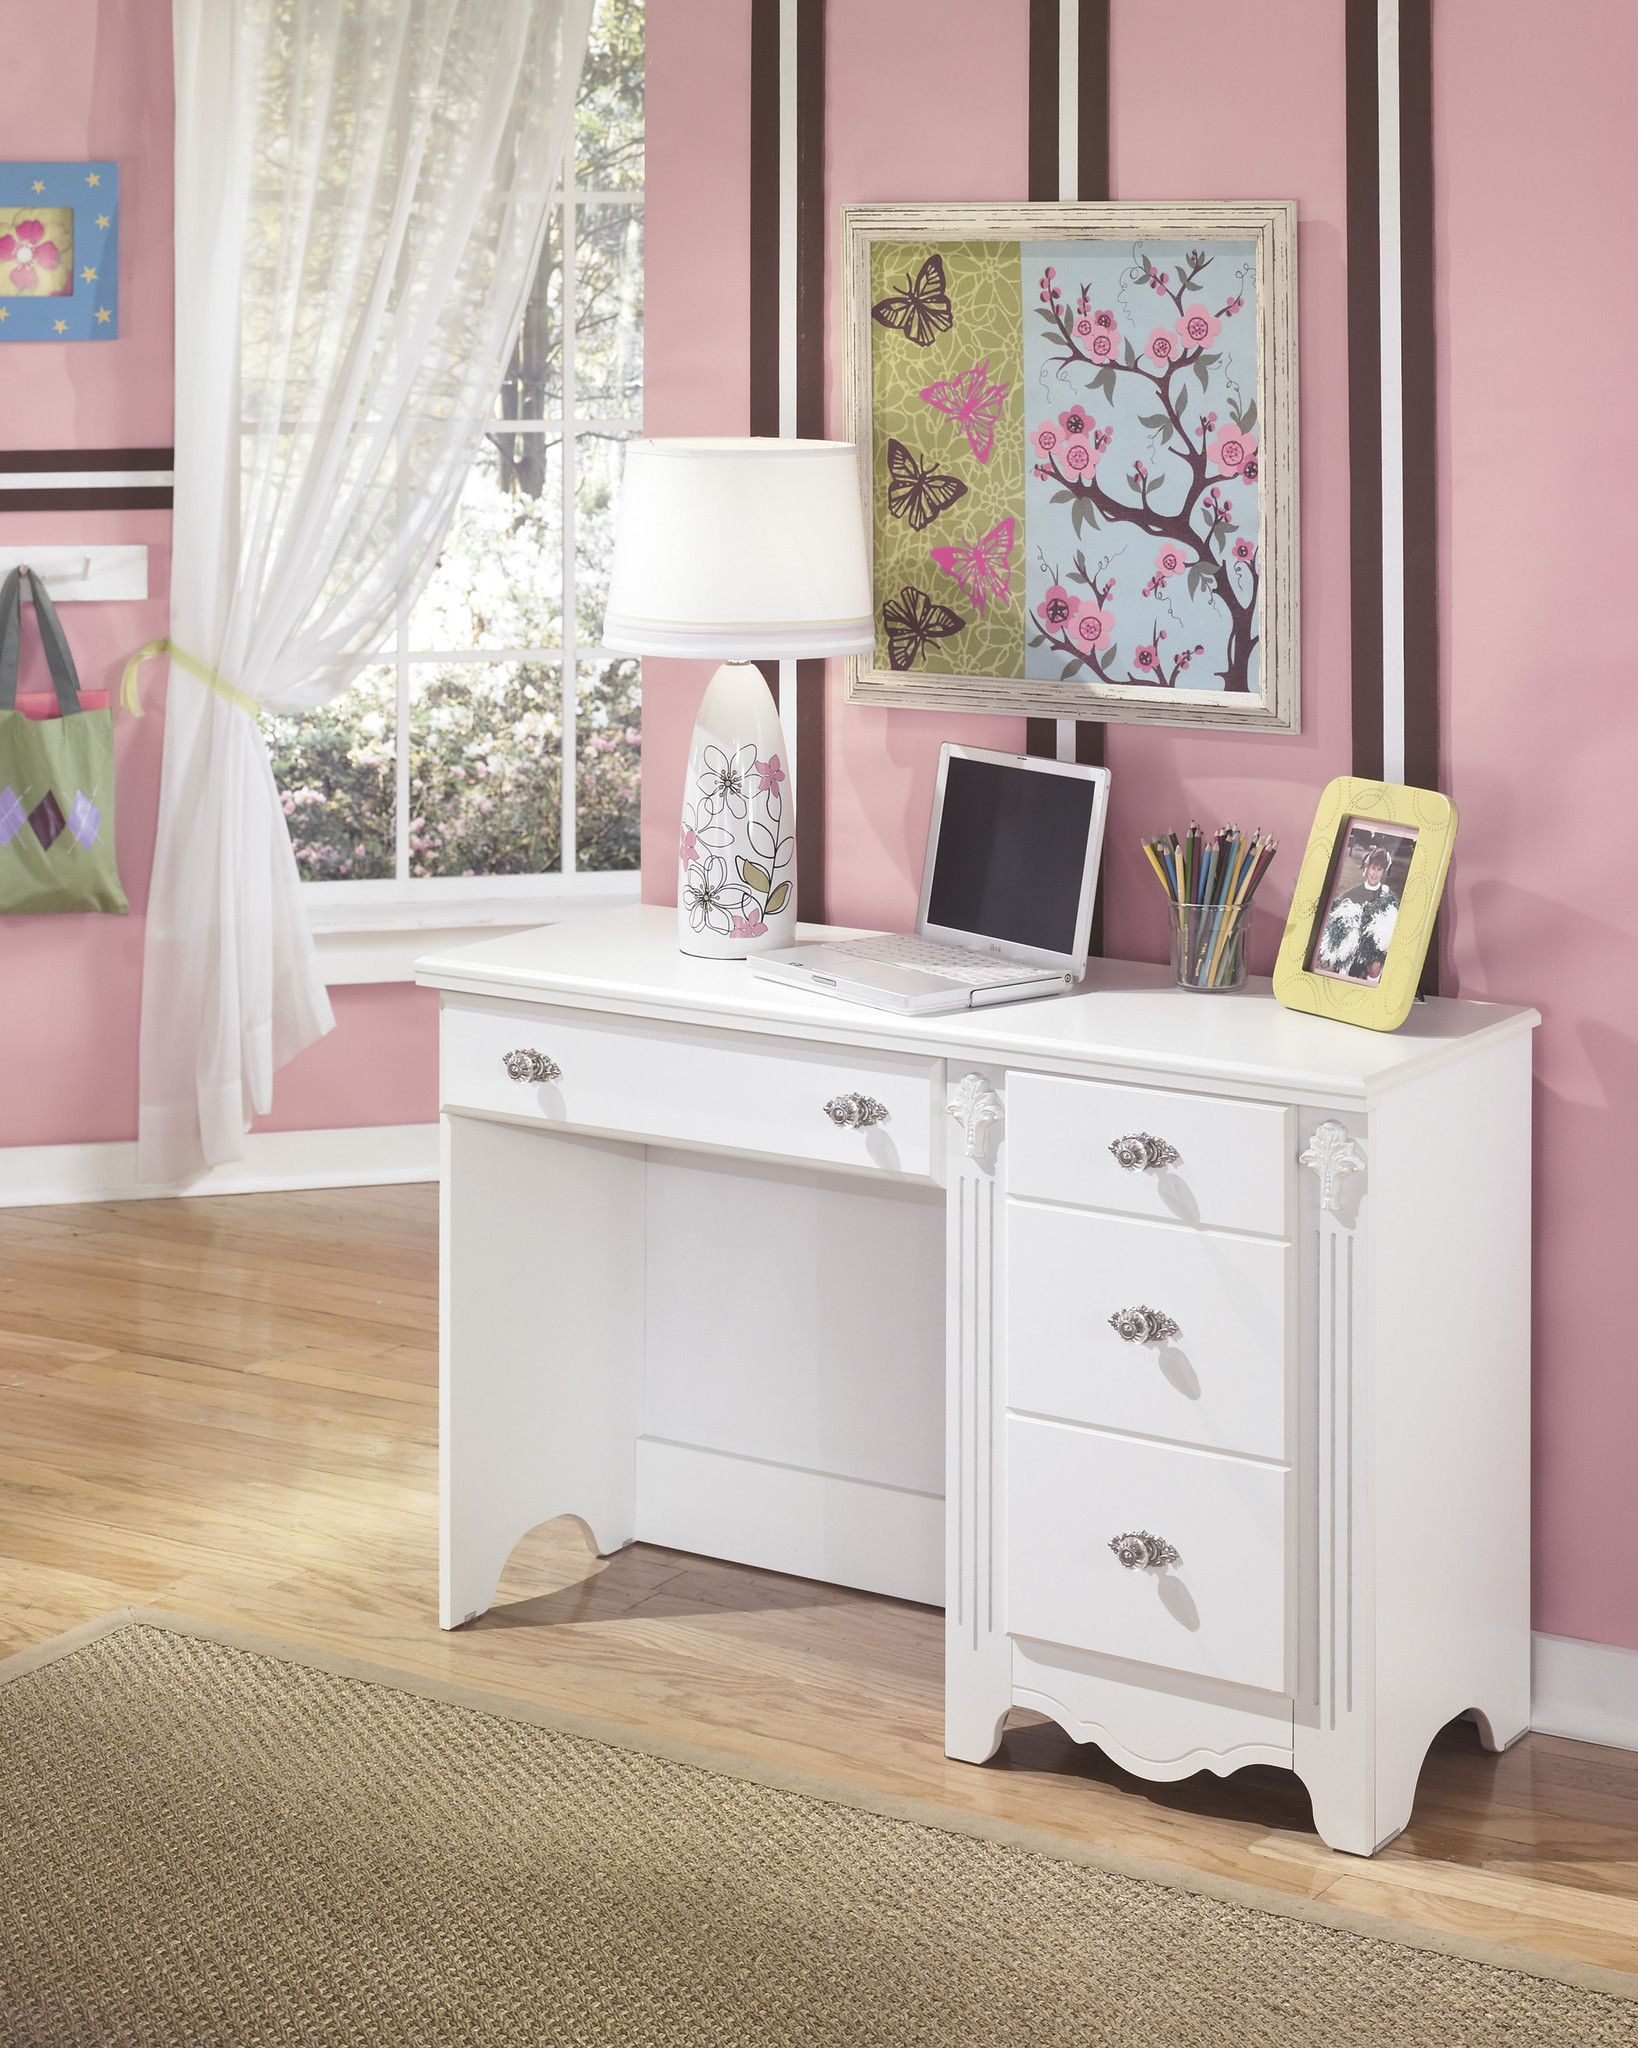 Best Exquisite Bedroom Desk Bedroom Desk Small Bedroom Desk 640 x 480